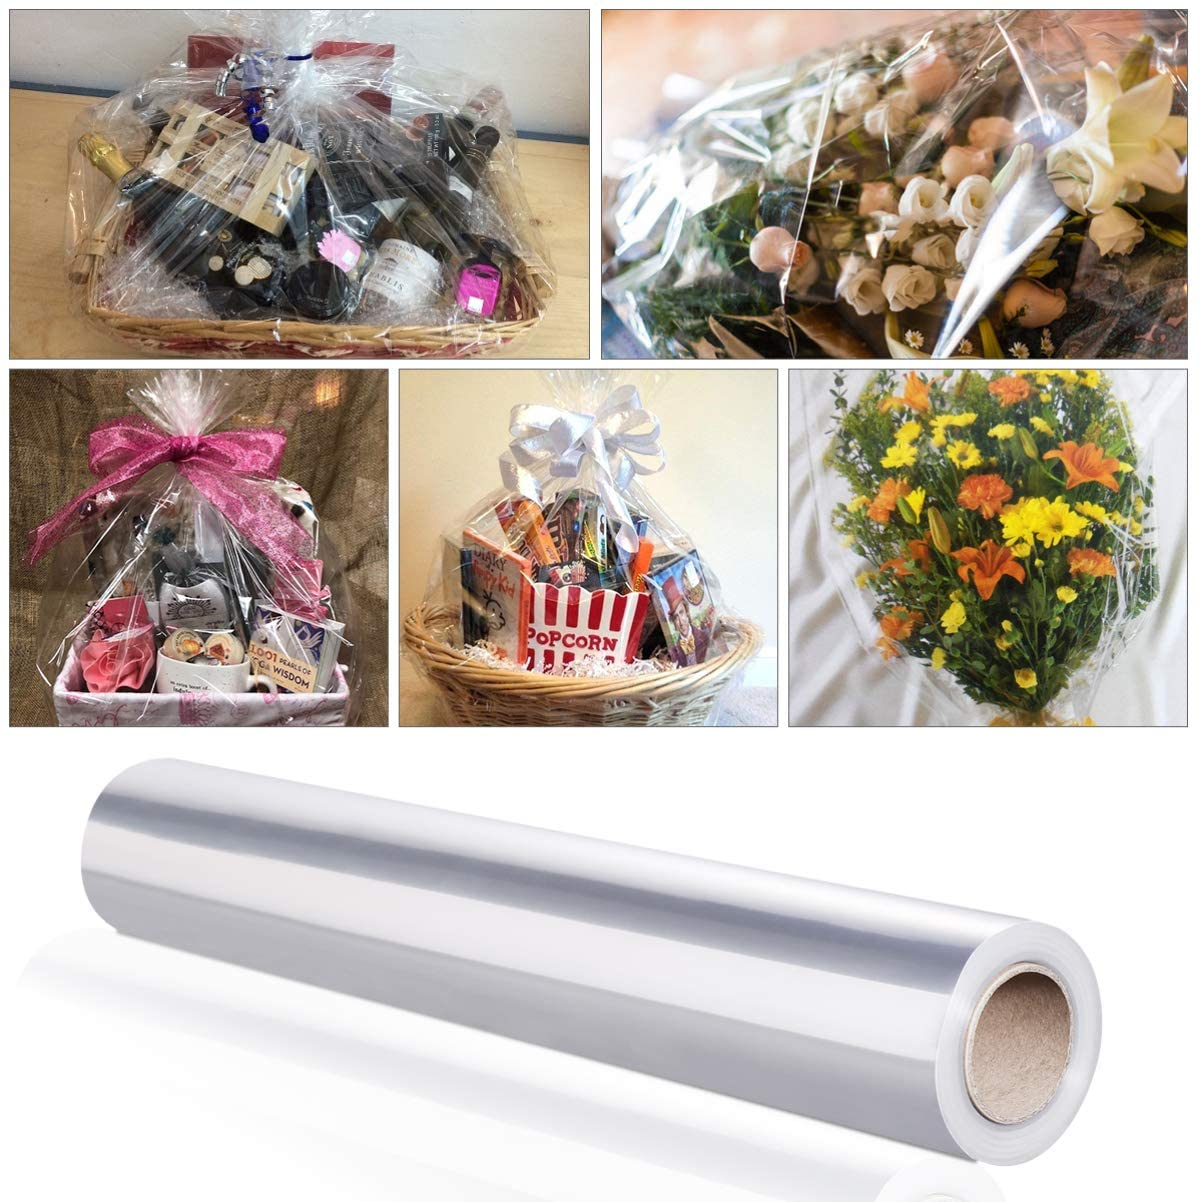 Clear Wrapping Roll, Thicken Transparent Long Film Gift Wrappings for Flowers Craft Basket Packing Paper